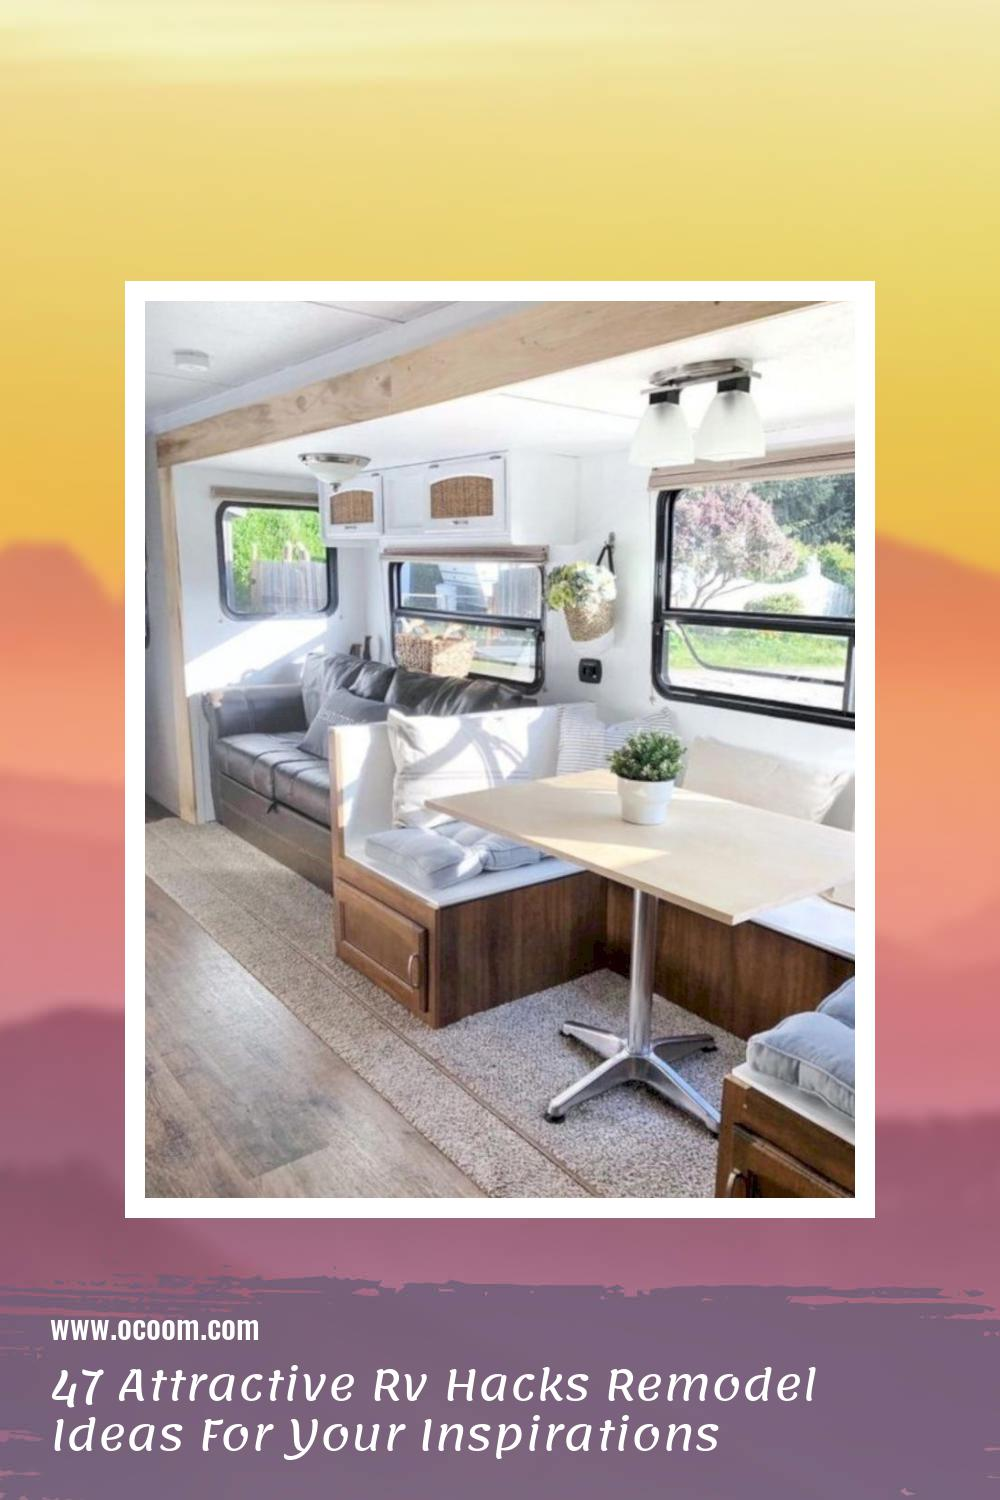 47 Attractive Rv Hacks Remodel Ideas For Your Inspirations 23